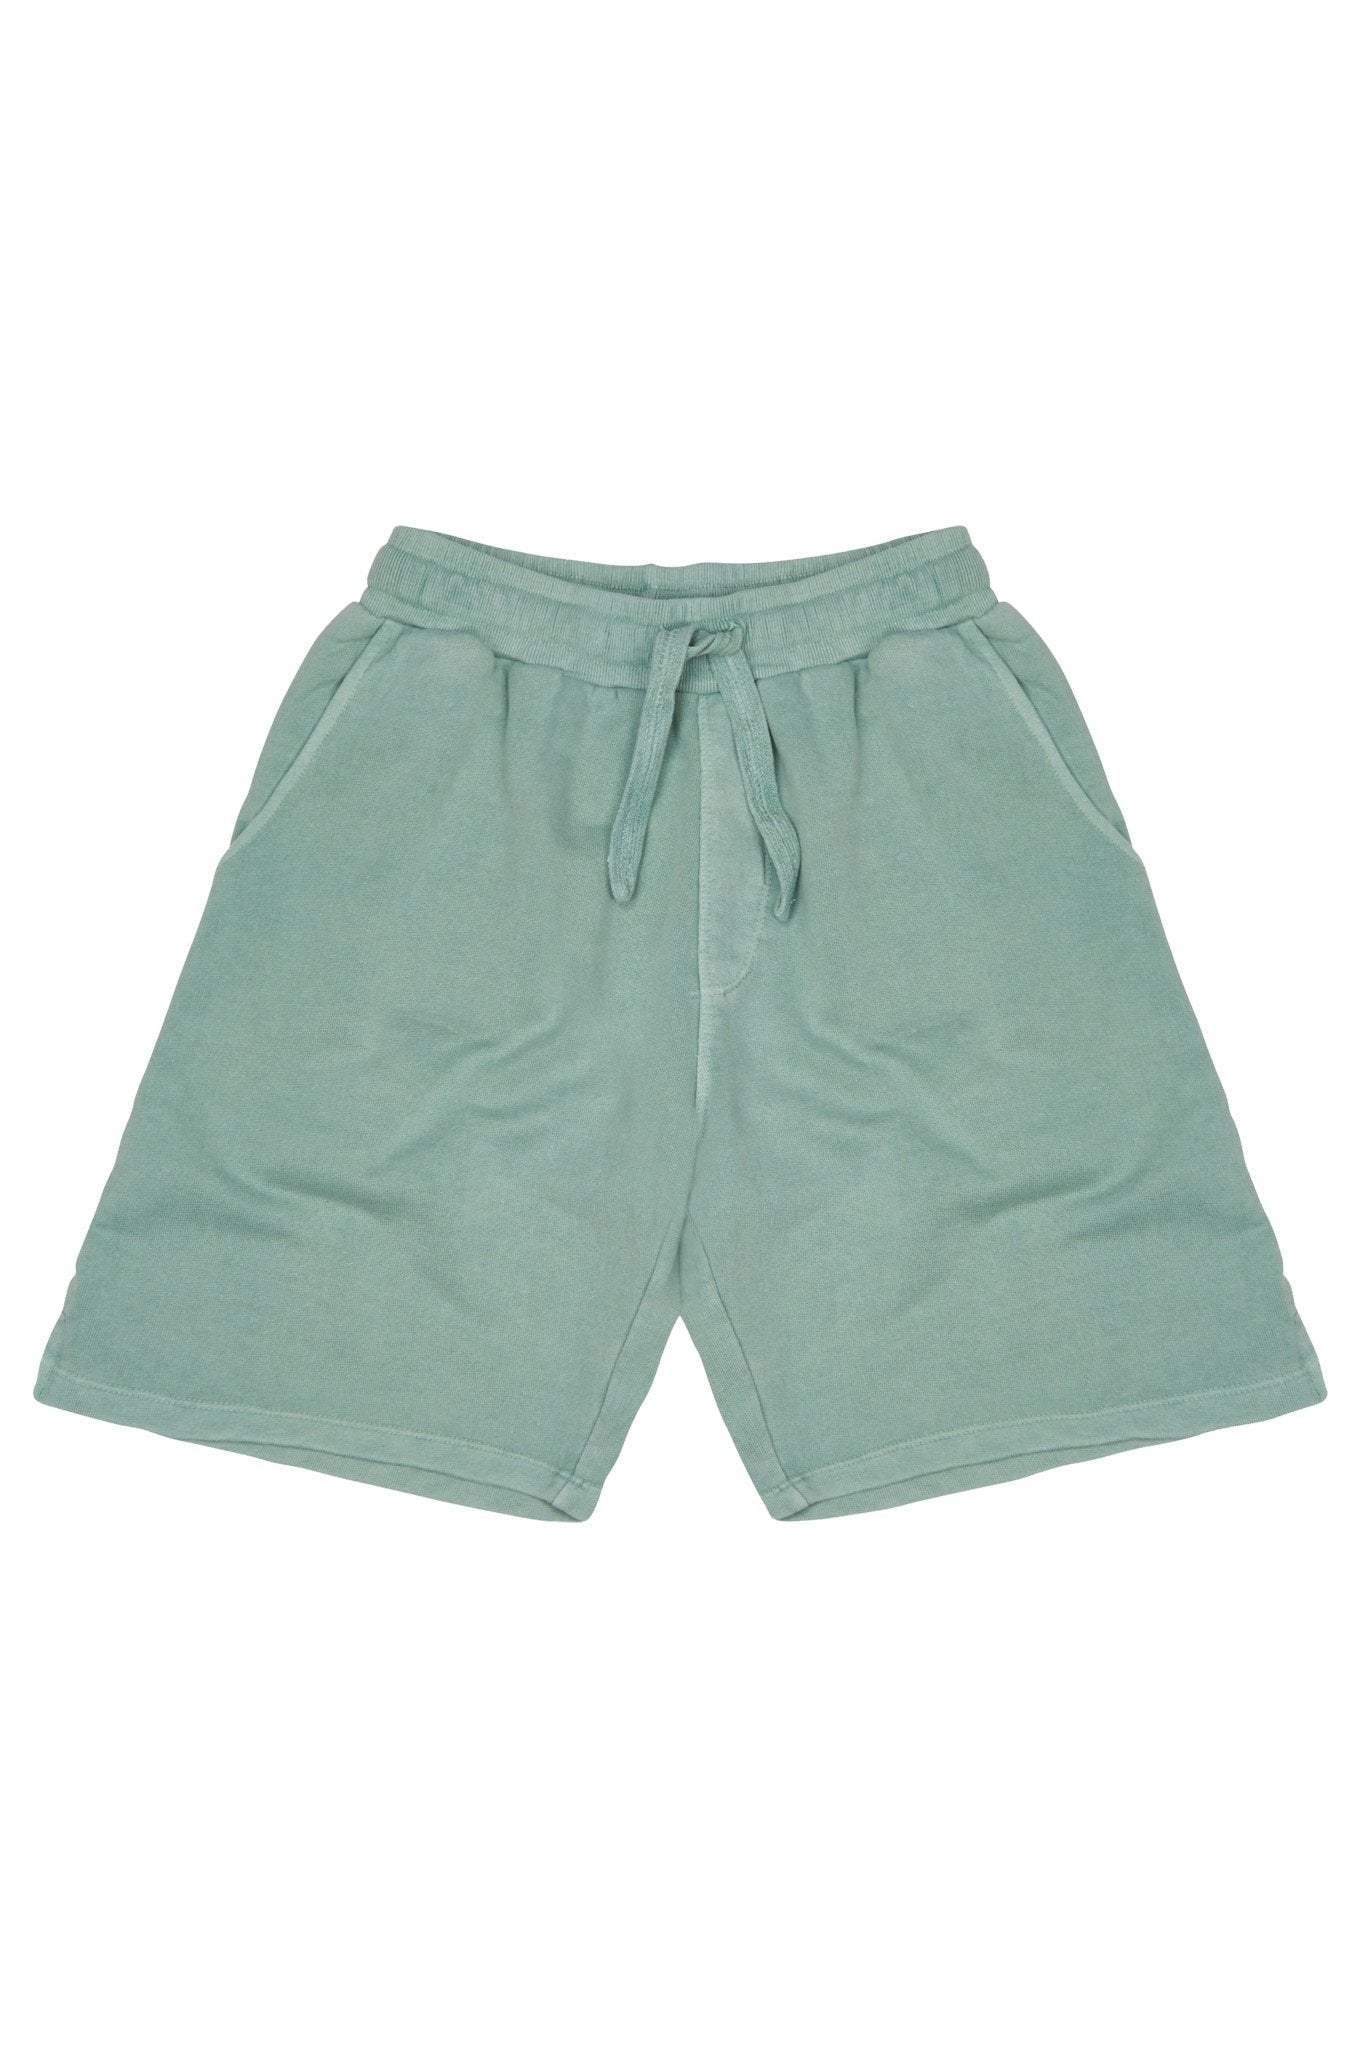 FLIP - GOTS Organic Cotton sweat shorts